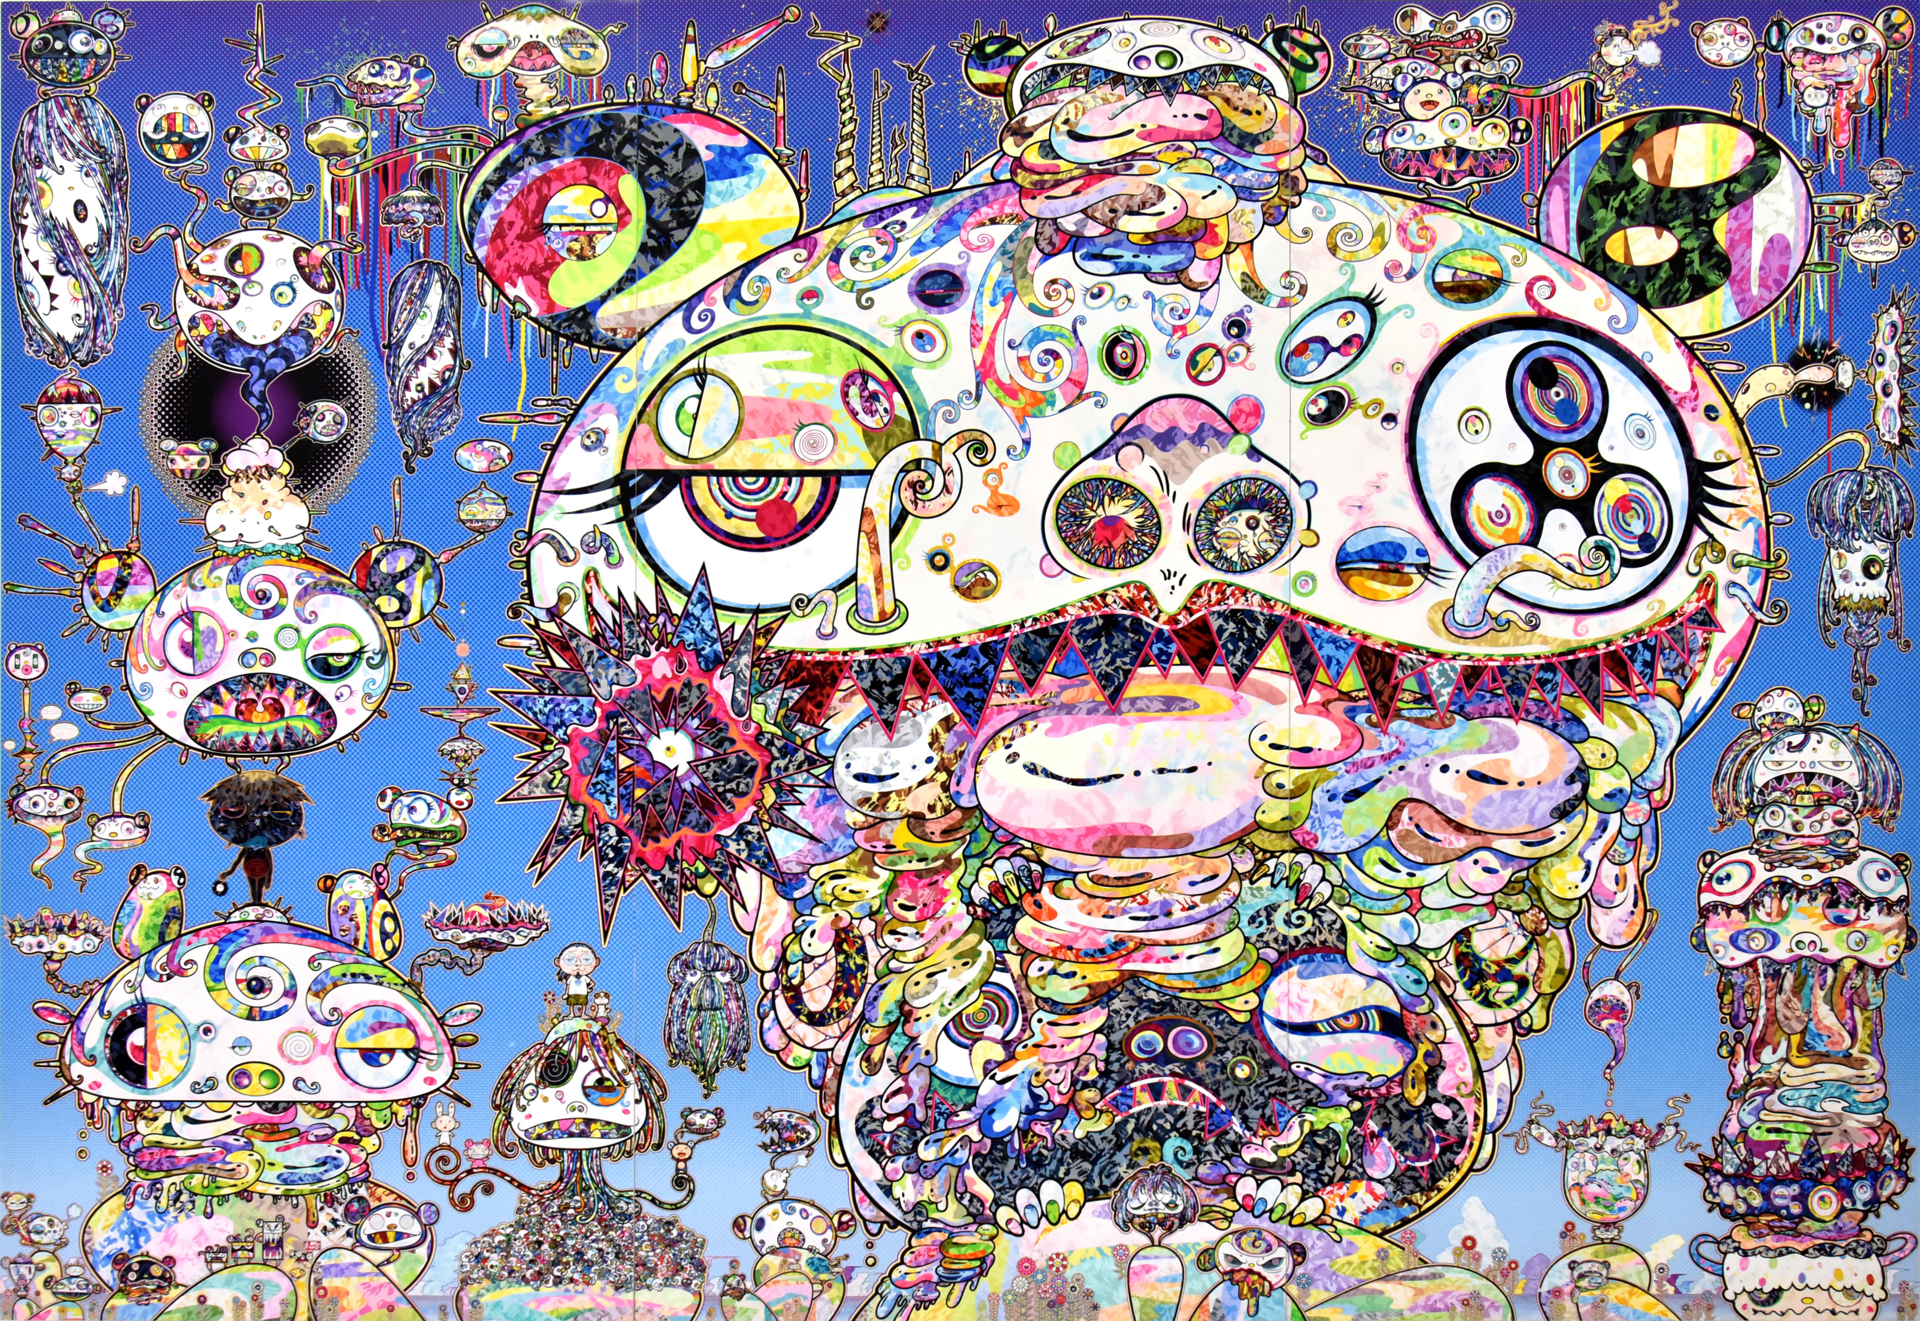 Takashi Murakami - Tan Tan Bo a.k.a Gerotan: Scorched by the Blaze in the Purgatory of Knowledge, 2018, acrylic on canvas mounted on board